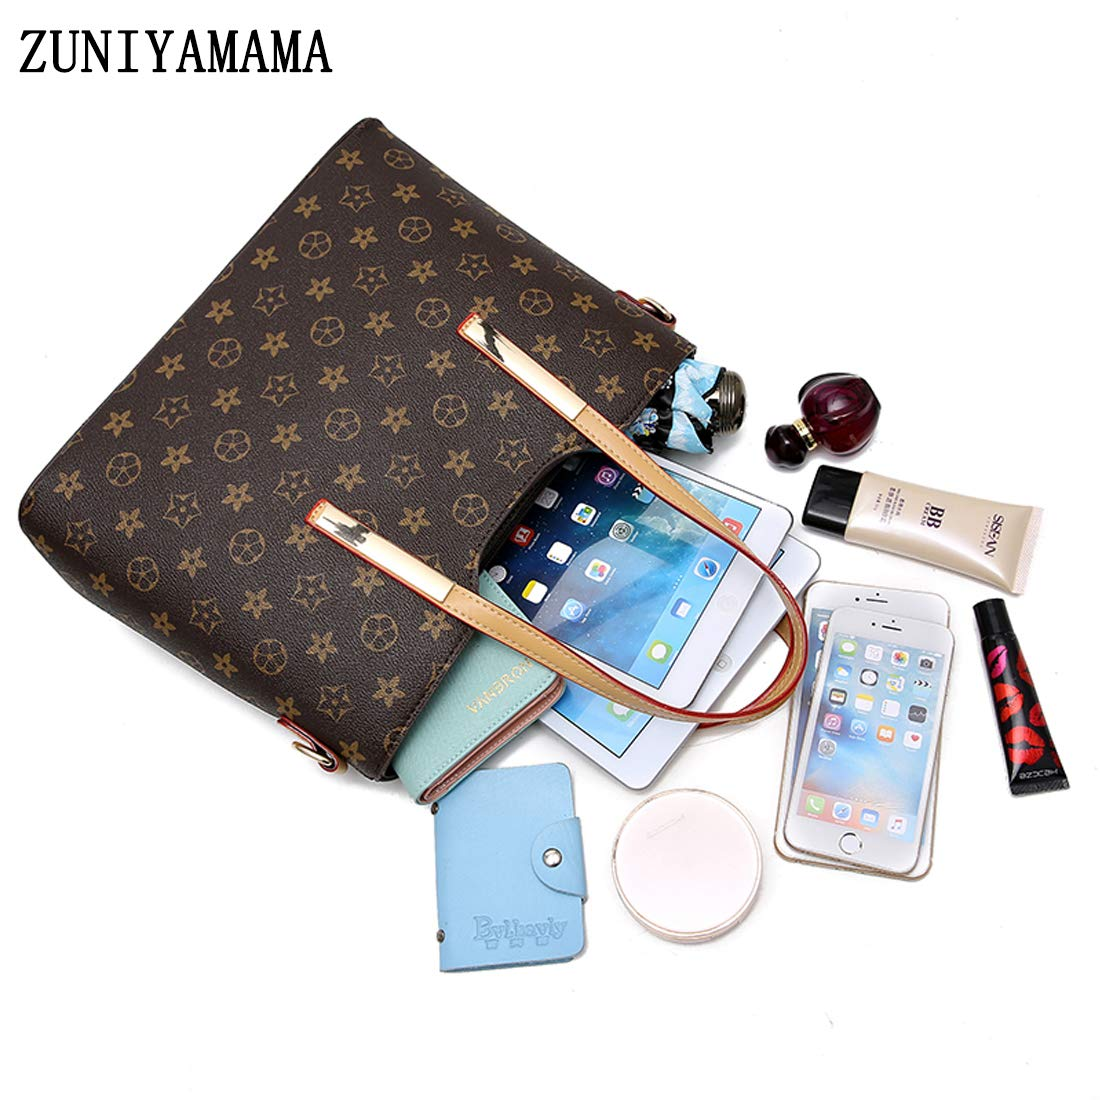 ZUNIYAMAMA Waterproof Scratch Resistant Synthetic Leather Lady Top Handle Handbags Set for Women Purses Shoulder Bag Fashion Tote Bags Casual Daypack by ZUNIYAMAMA (Image #6)